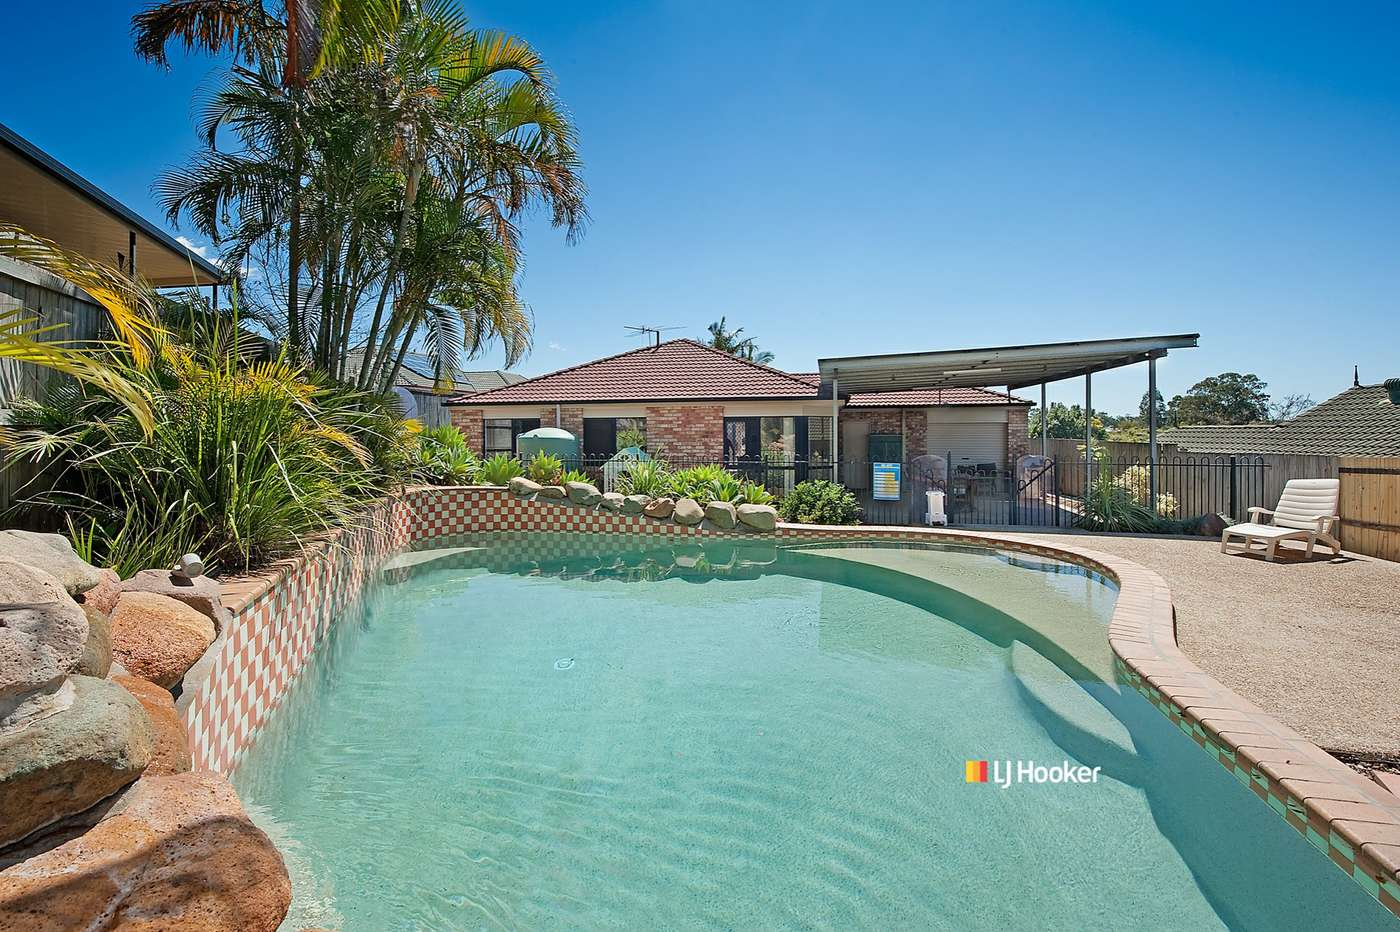 Main view of Homely house listing, 3 Corinto Court, Dakabin, QLD 4503